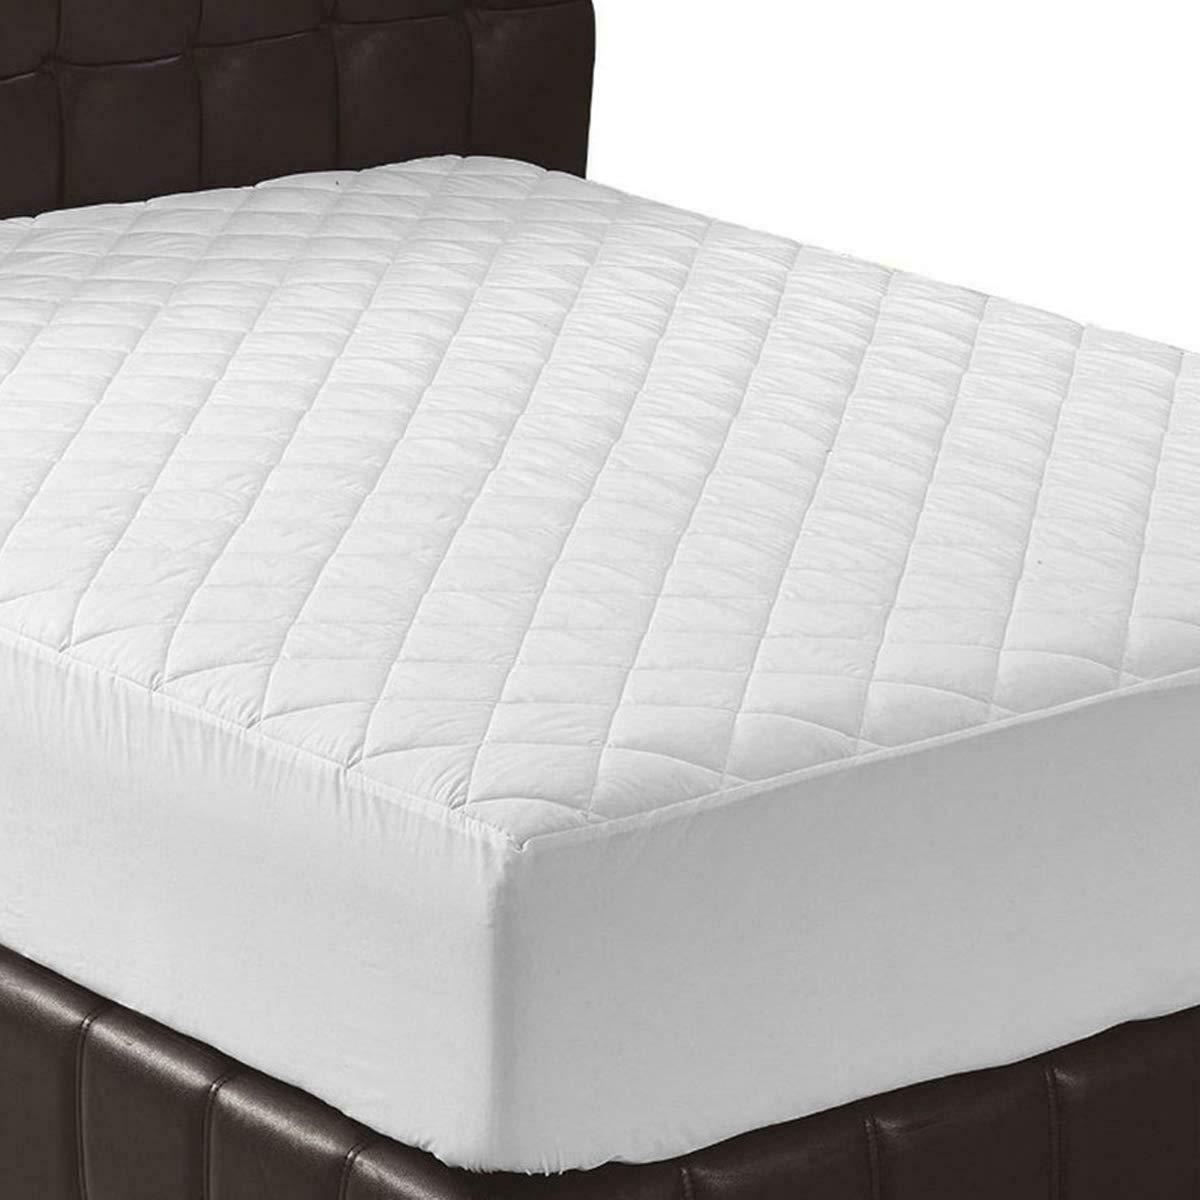 Queen Size Mattress Pad Soft Plush Fitted Pillow Top Bed